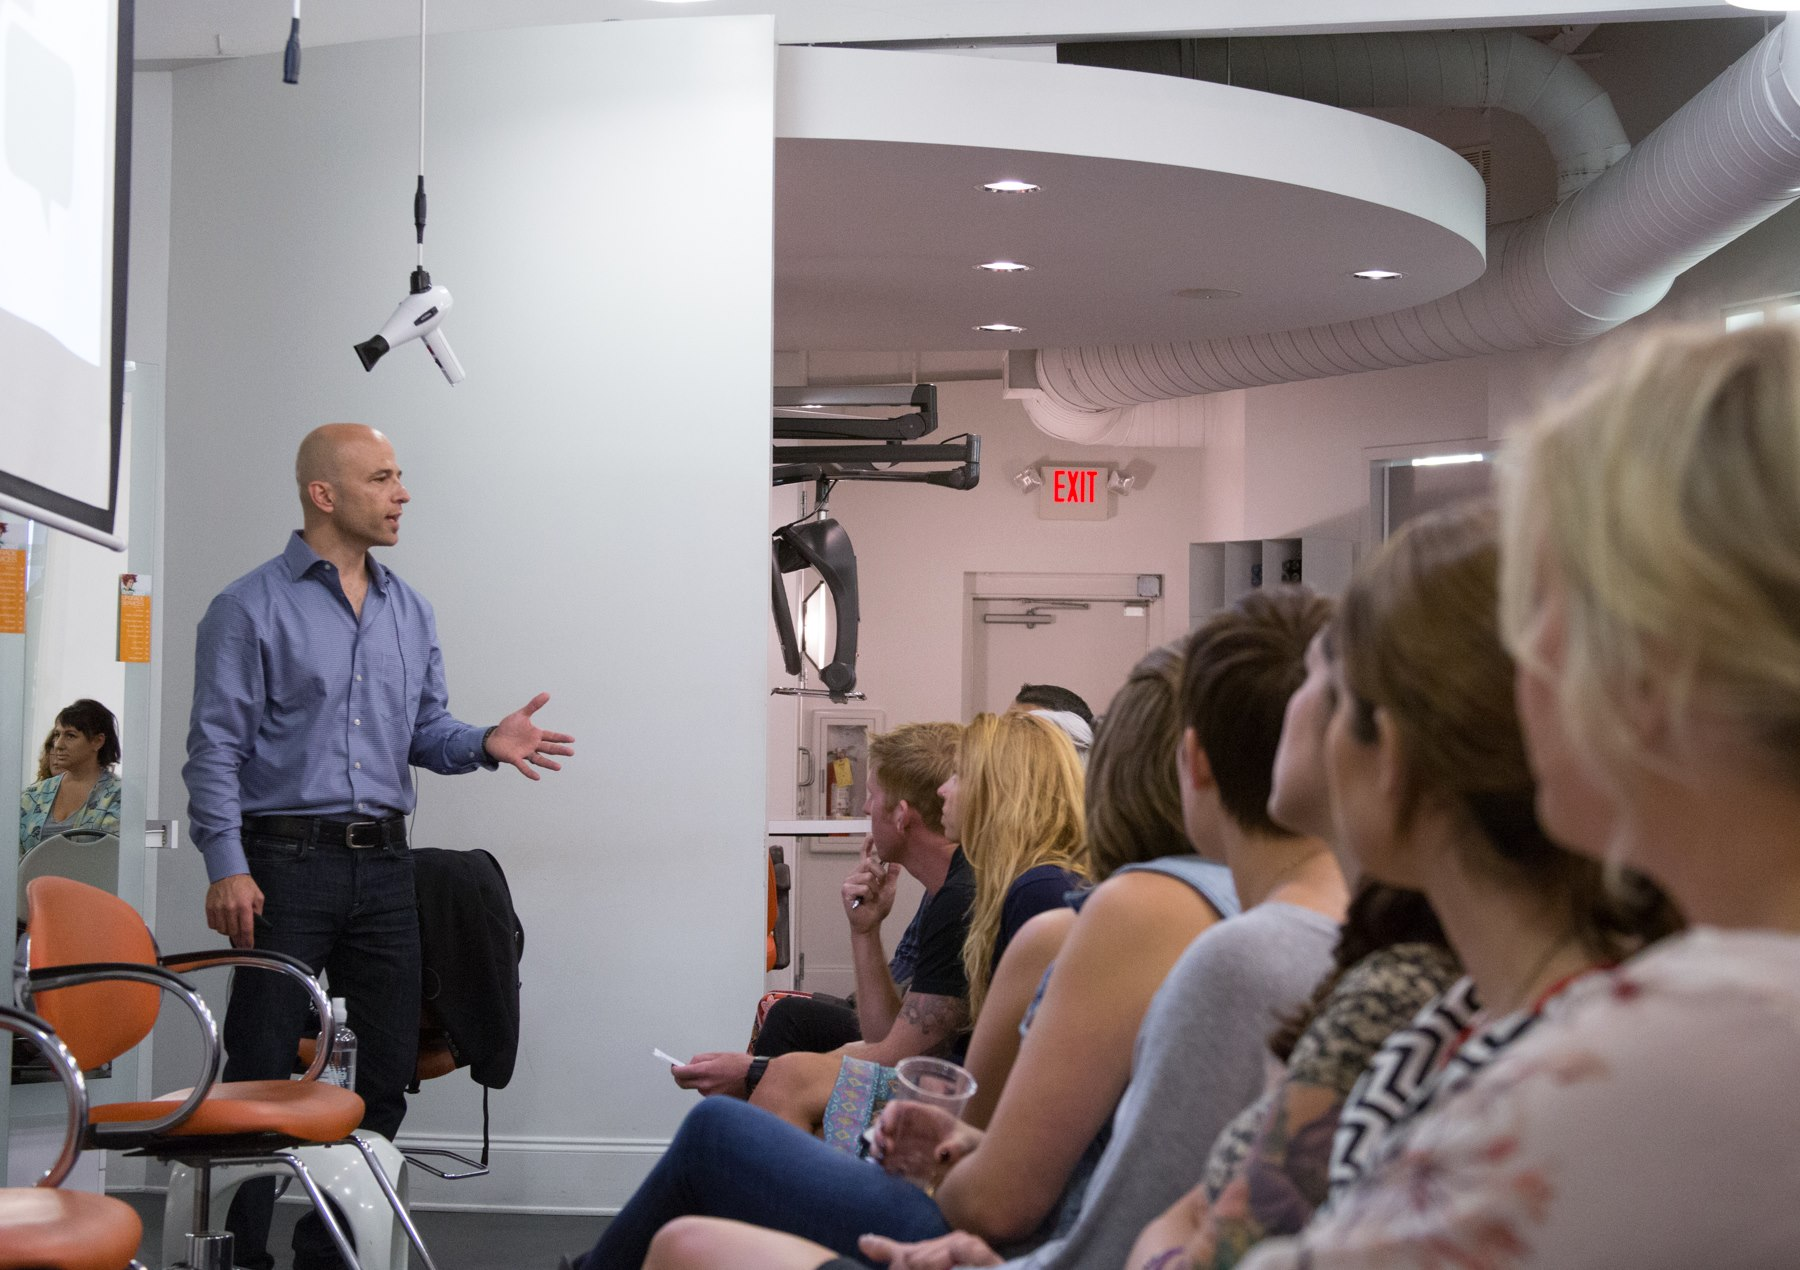 In a Psy-Cosmetology training session, Jay Williams shows stylists and owners how to build client relationships based on both character and competence.